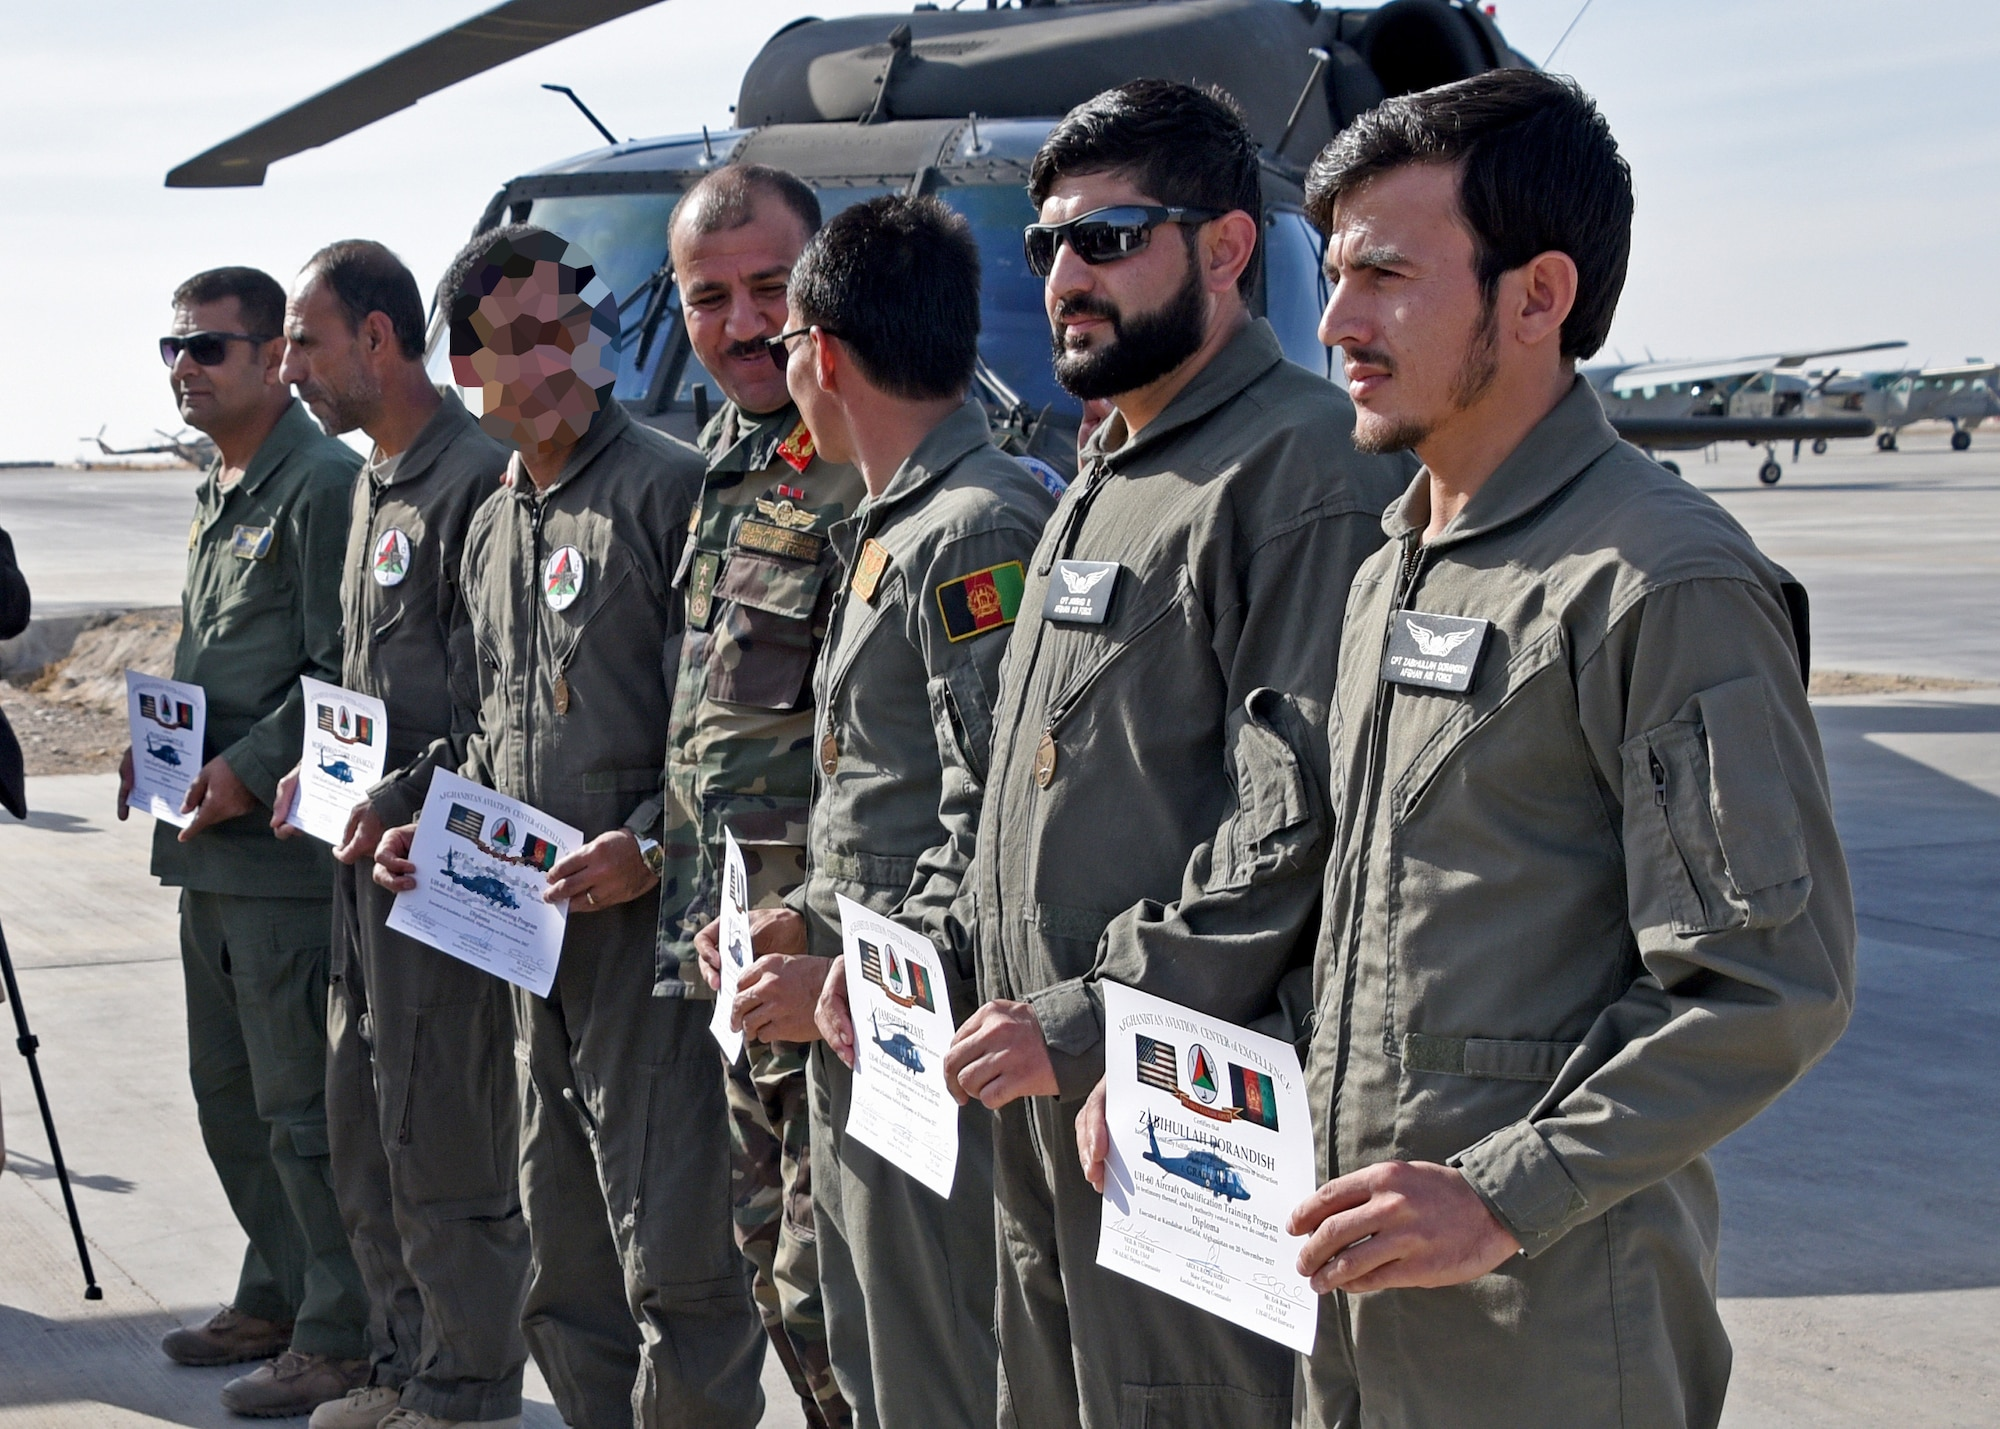 Afghan Air Force pilots display their certificates after a UH-60 Black Hawk Aircraft Qualification Training graduation ceremony at Kandahar Airfield, Afghanistan, Nov. 20, 2017. The six pilots are the first AAF Black Hawk pilots, is part of a larger modernization program. The Afghan Air Force will more than double their fleet of aircraft over the next seven years. Plans include the introduction of AC-208 attack aircraft and UH-60 Black Hawk assault helicopters, and additional A-29 attack aircraft and MD-530 attack helicopters to the force. (U.S. Air Force photo by Tech. Sgt. Veronica Pierce)